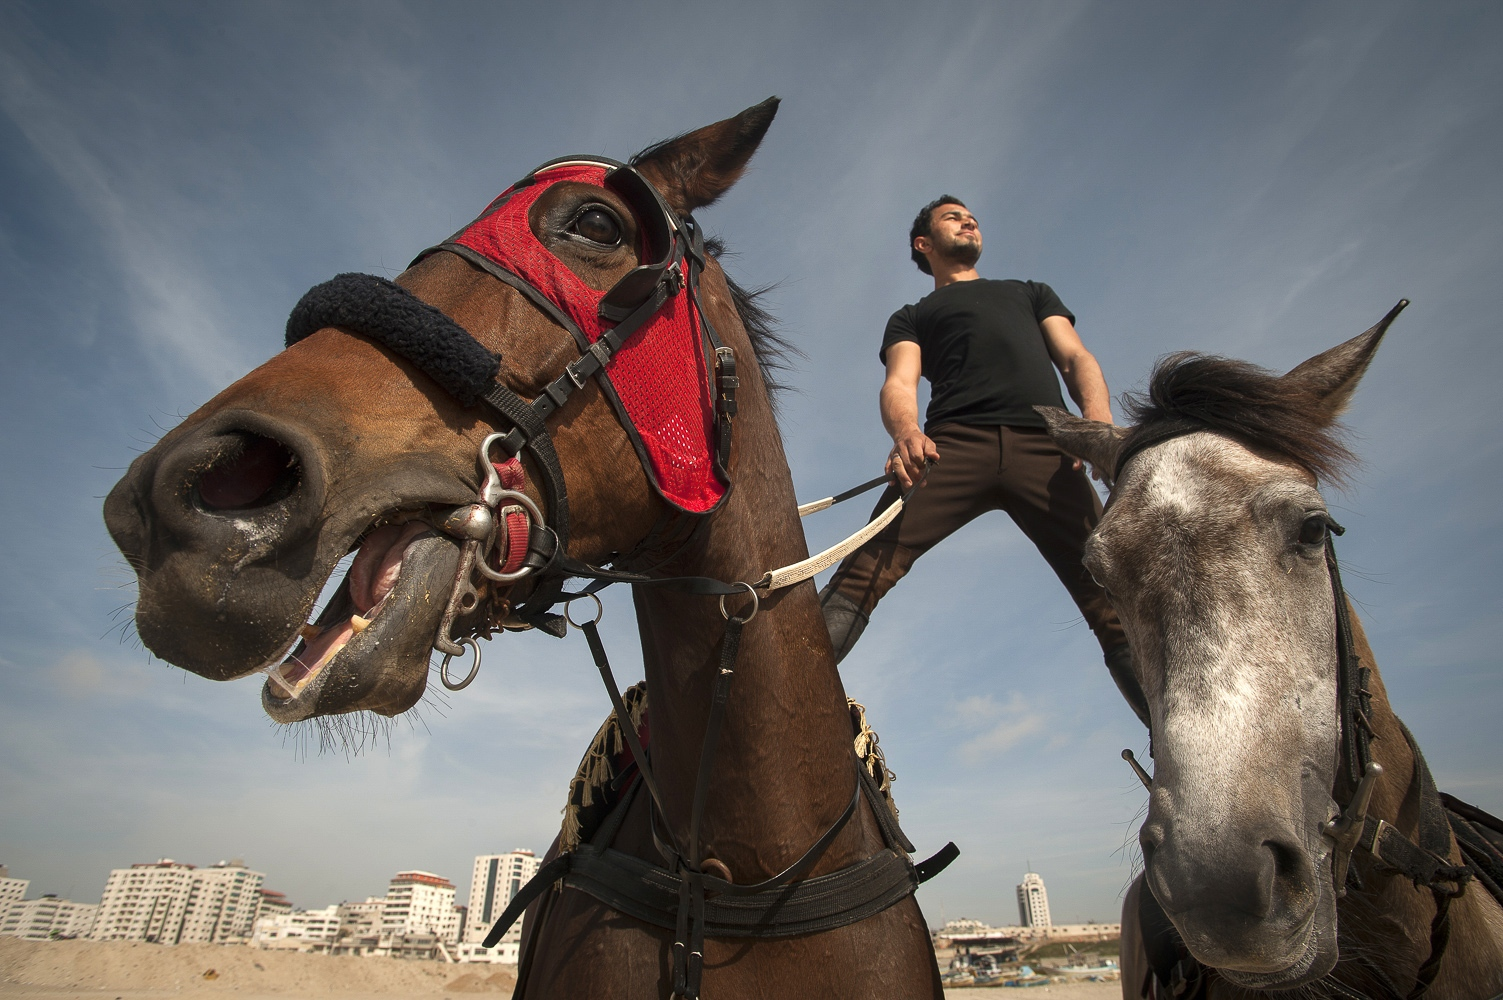 The Horsemen of Gaza. Abdulla al Ghefari : 'Horses are my life, job, passion.'